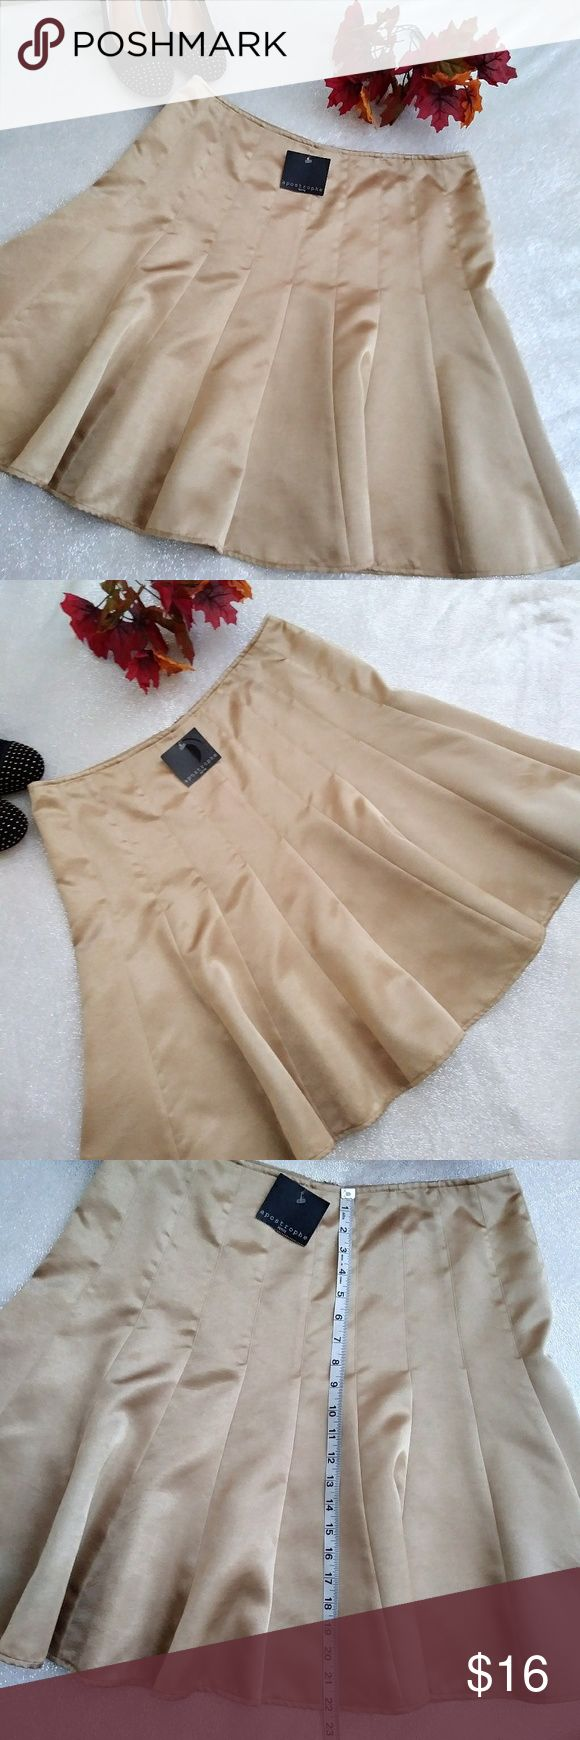 NWT Gold 16 Petite A Line Mermaid Skirt NWT Gold 16 Petite A Line Mermaid or Trumpet Skirt Back Zipper See Pics for Measurements Aeropostale Skirts Midi